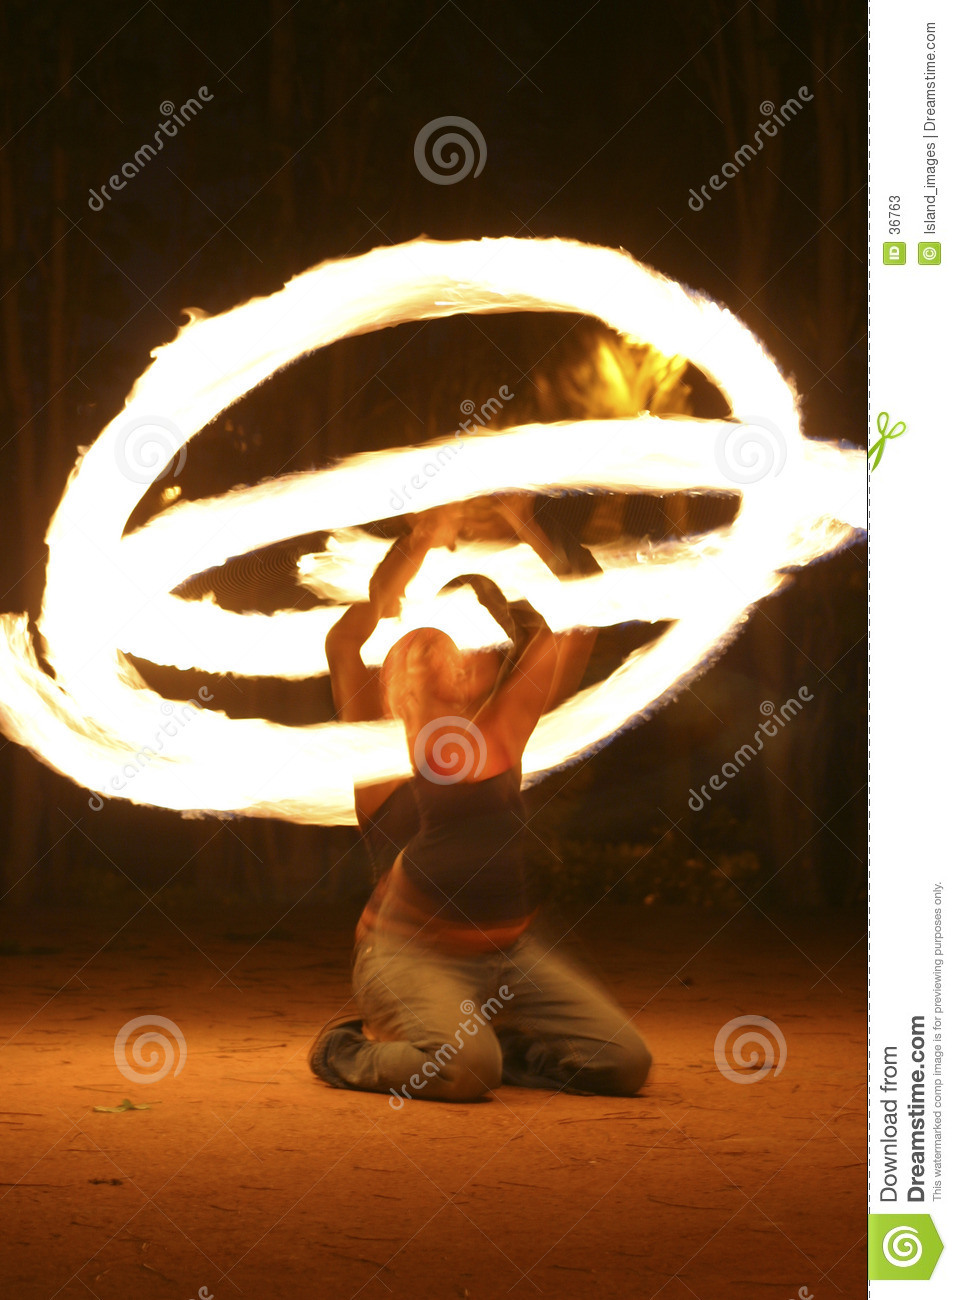 Fire Performance